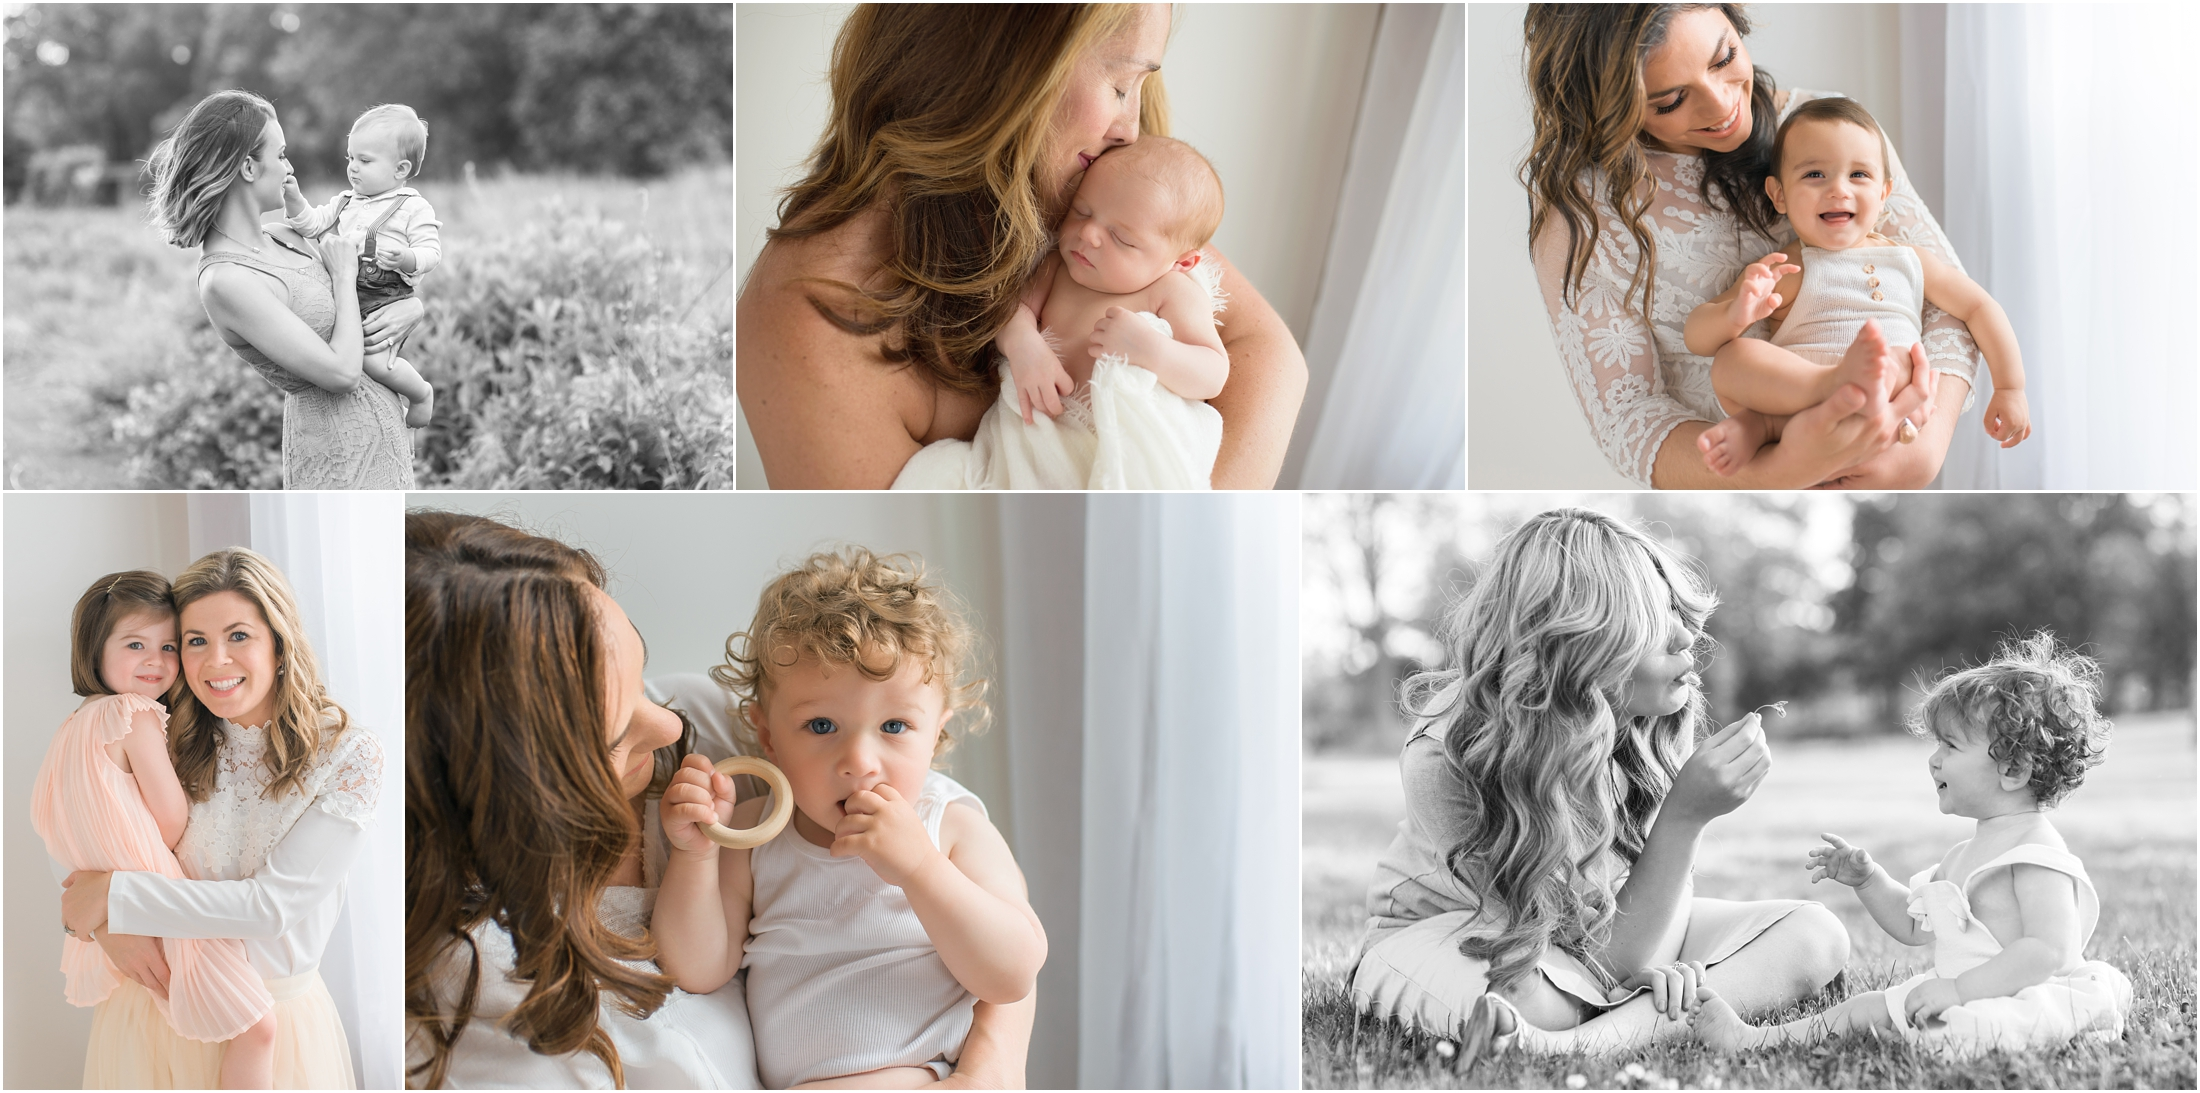 Mommy and Me photo sessions in West Hartford, Simsbury, Canton, Avon and Farmington Valley CT.